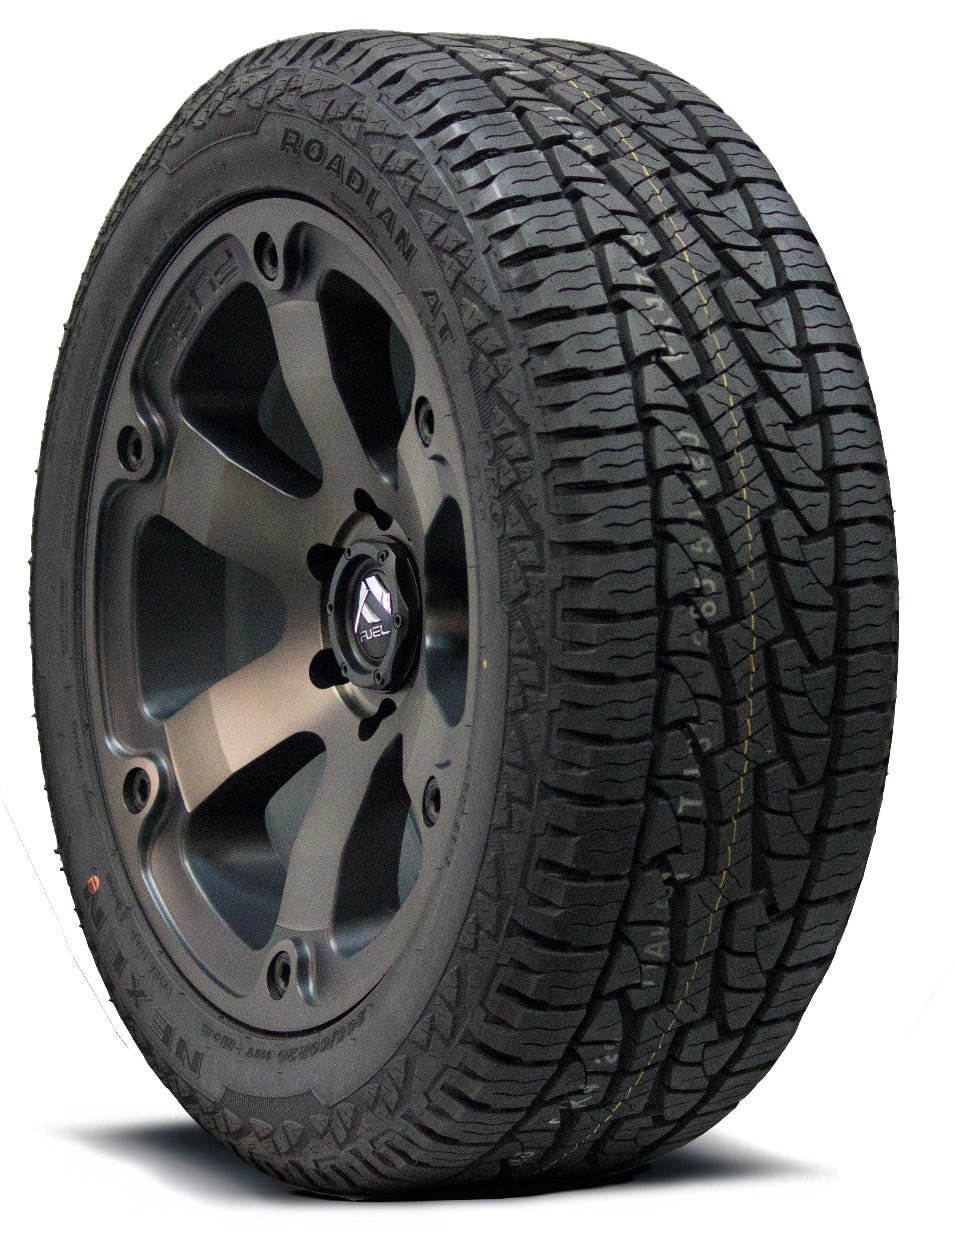 275/65R17 NEXEN ROADIAN AT PRO RA8 | BLACK LTR 115T